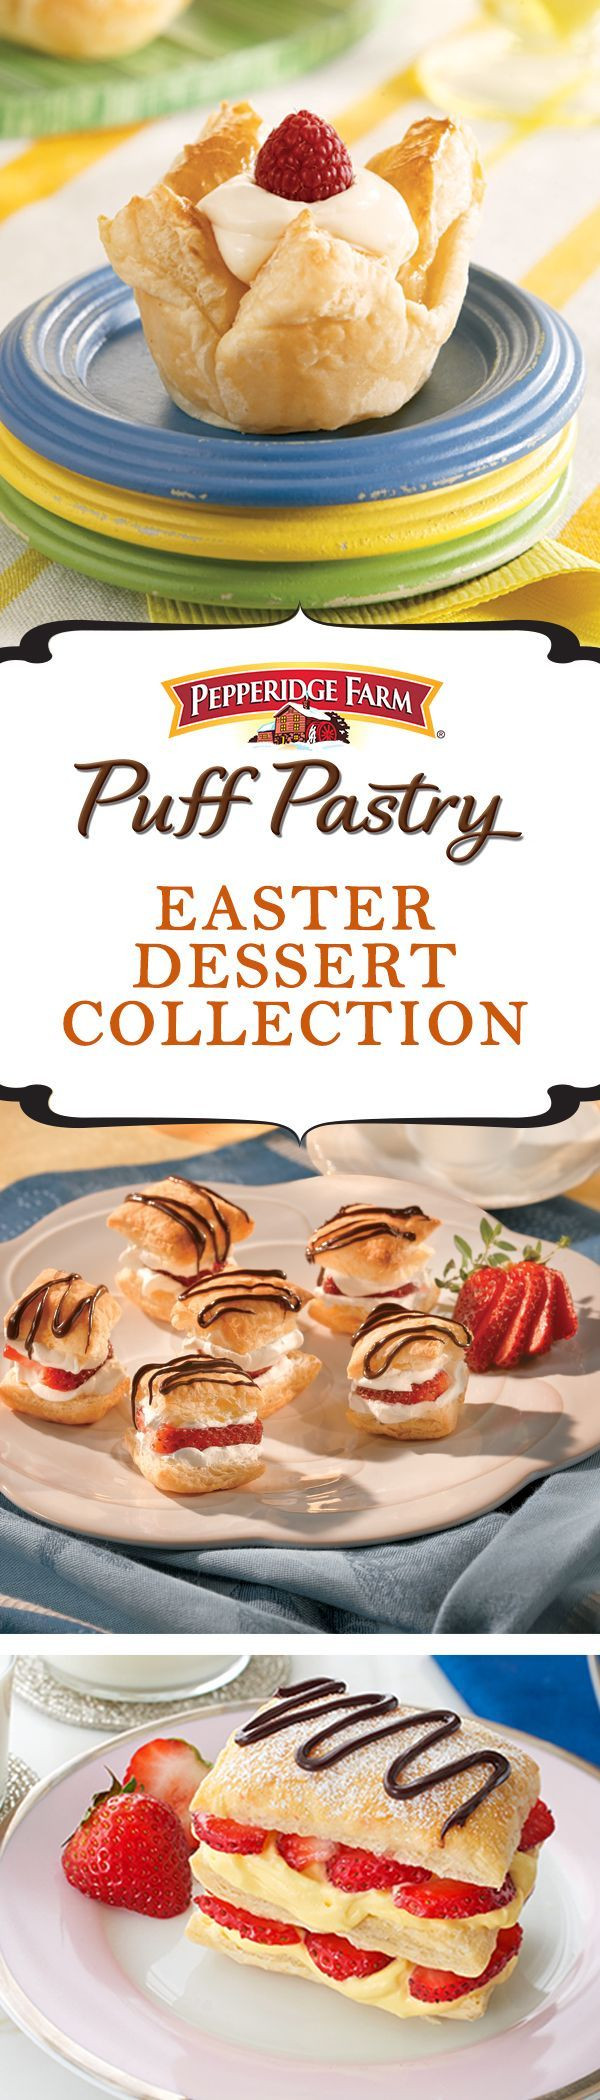 Favorite Easter Desserts  17 Best ideas about Puff Pastry Desserts on Pinterest